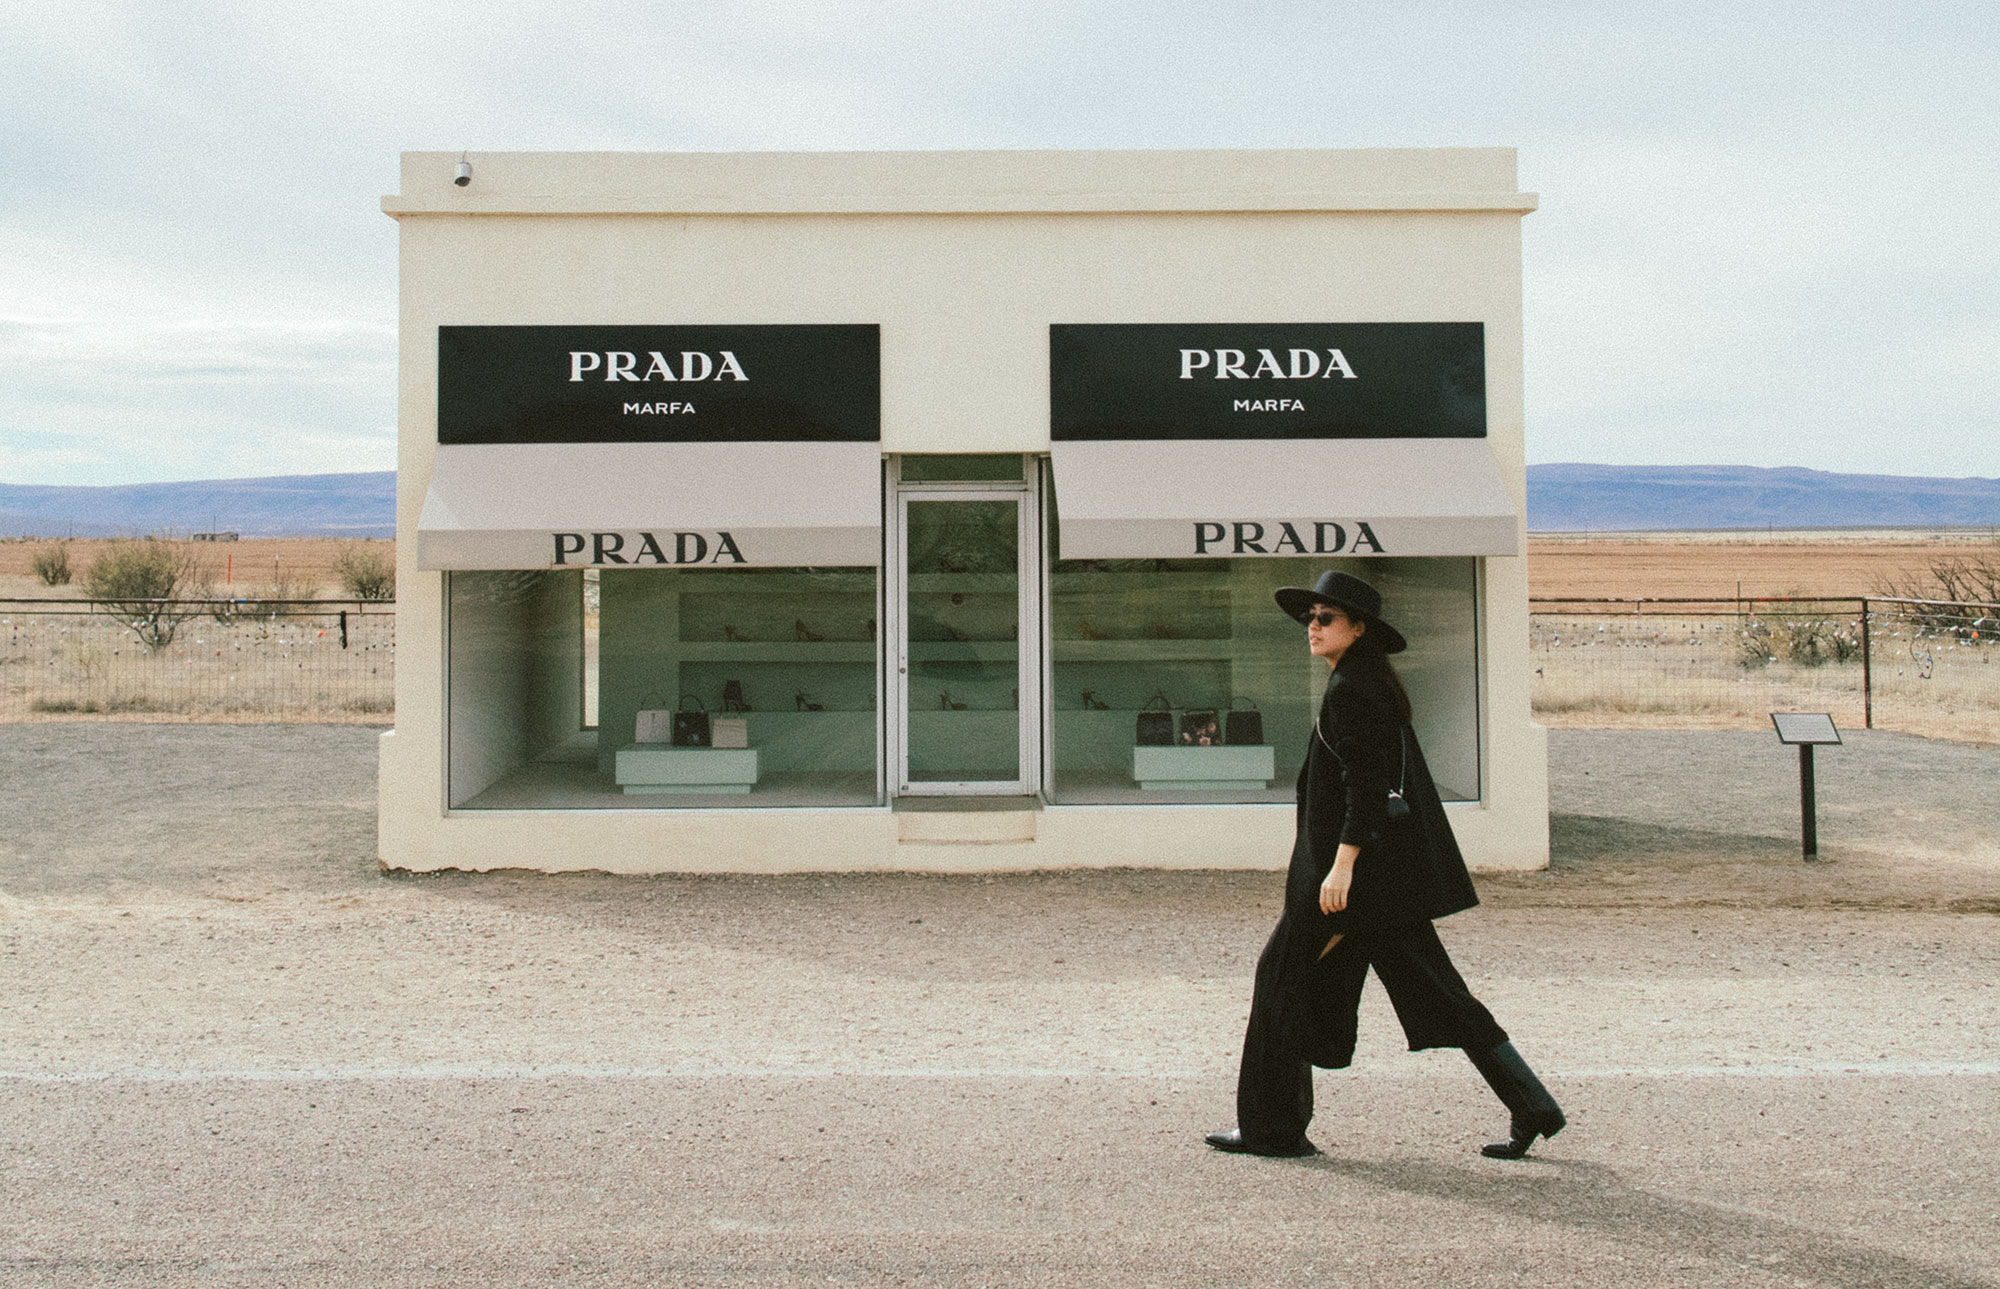 Prada Marfa - Texas Travel Diary / All Black Everything Cowboy Look - iHeartAlice.com / Travel, Lifestyle, Fashion & Foodblog – 7 Things To Do & See in Marfa, Texas